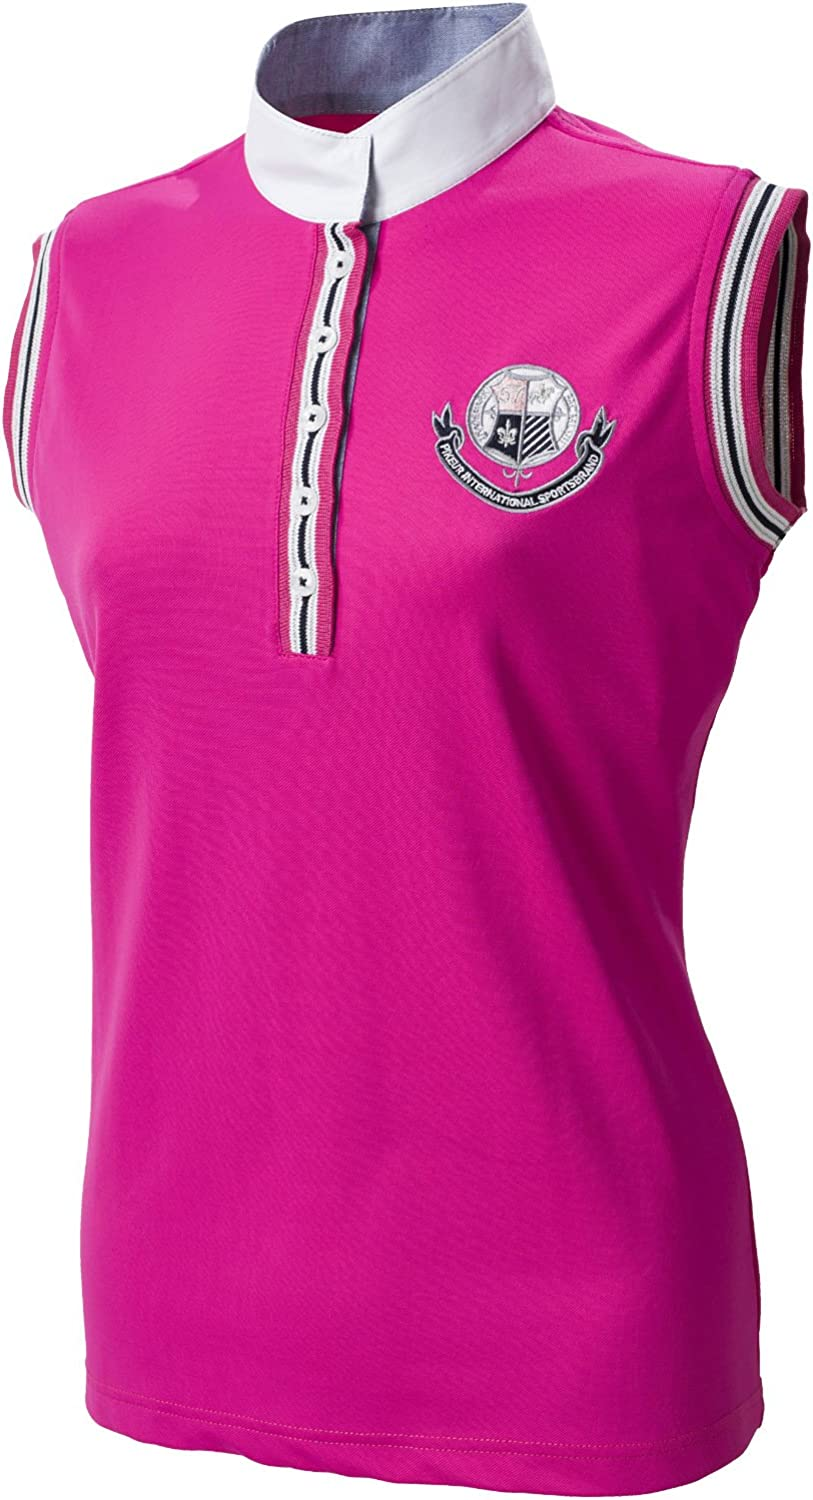 Pikeur  ladies sleeveless competition shirt with stripecontrasts